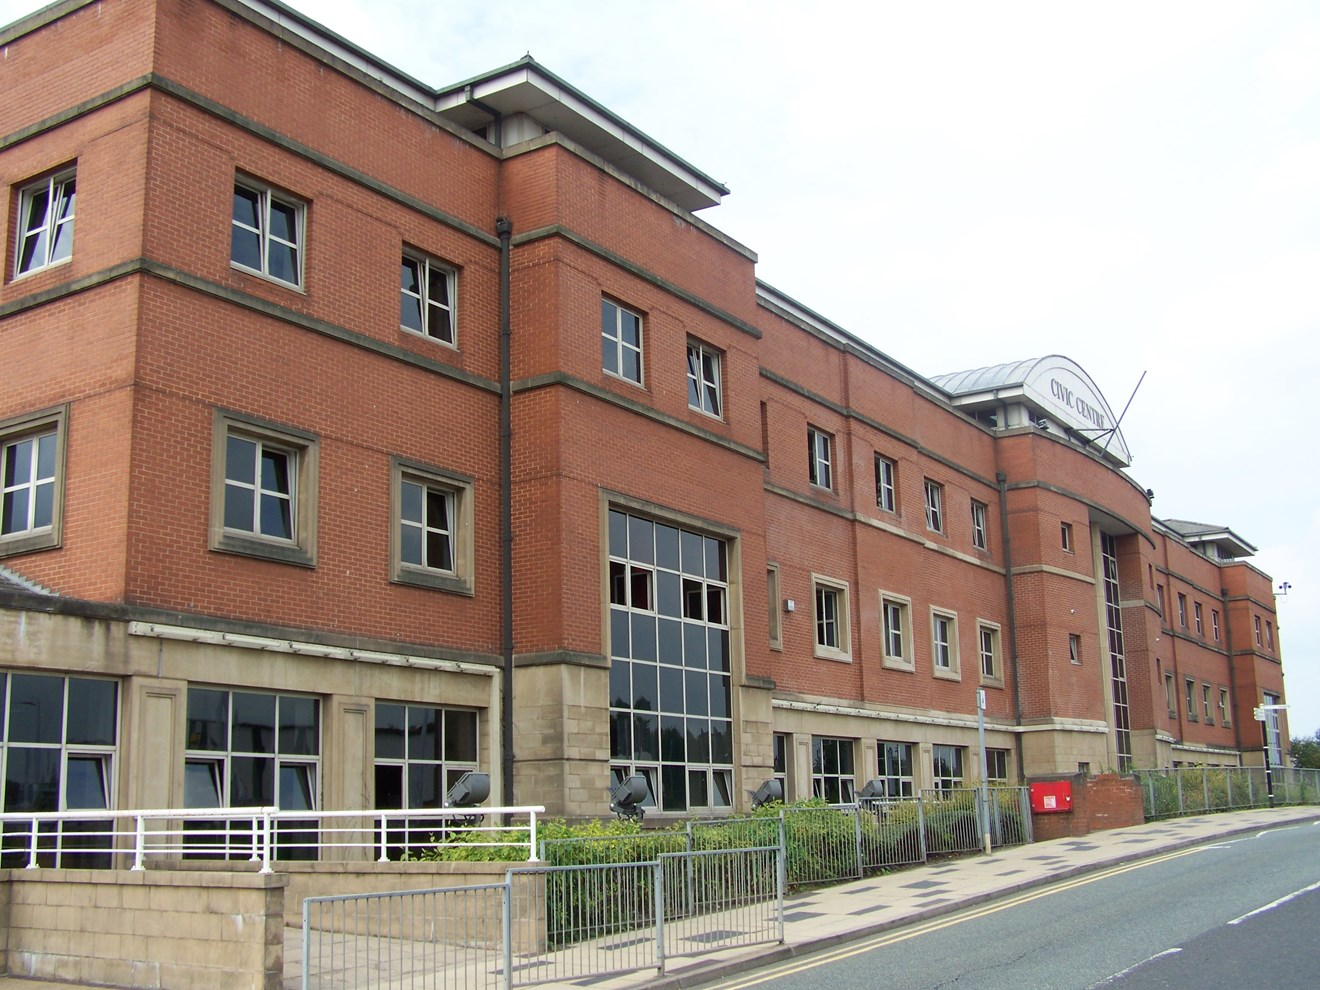 Siemens partners with the Lynx Group to help Stoke-on-Trent City Council make energy efficiencies to save thousands and boost the environment: Stoke Civic Centre